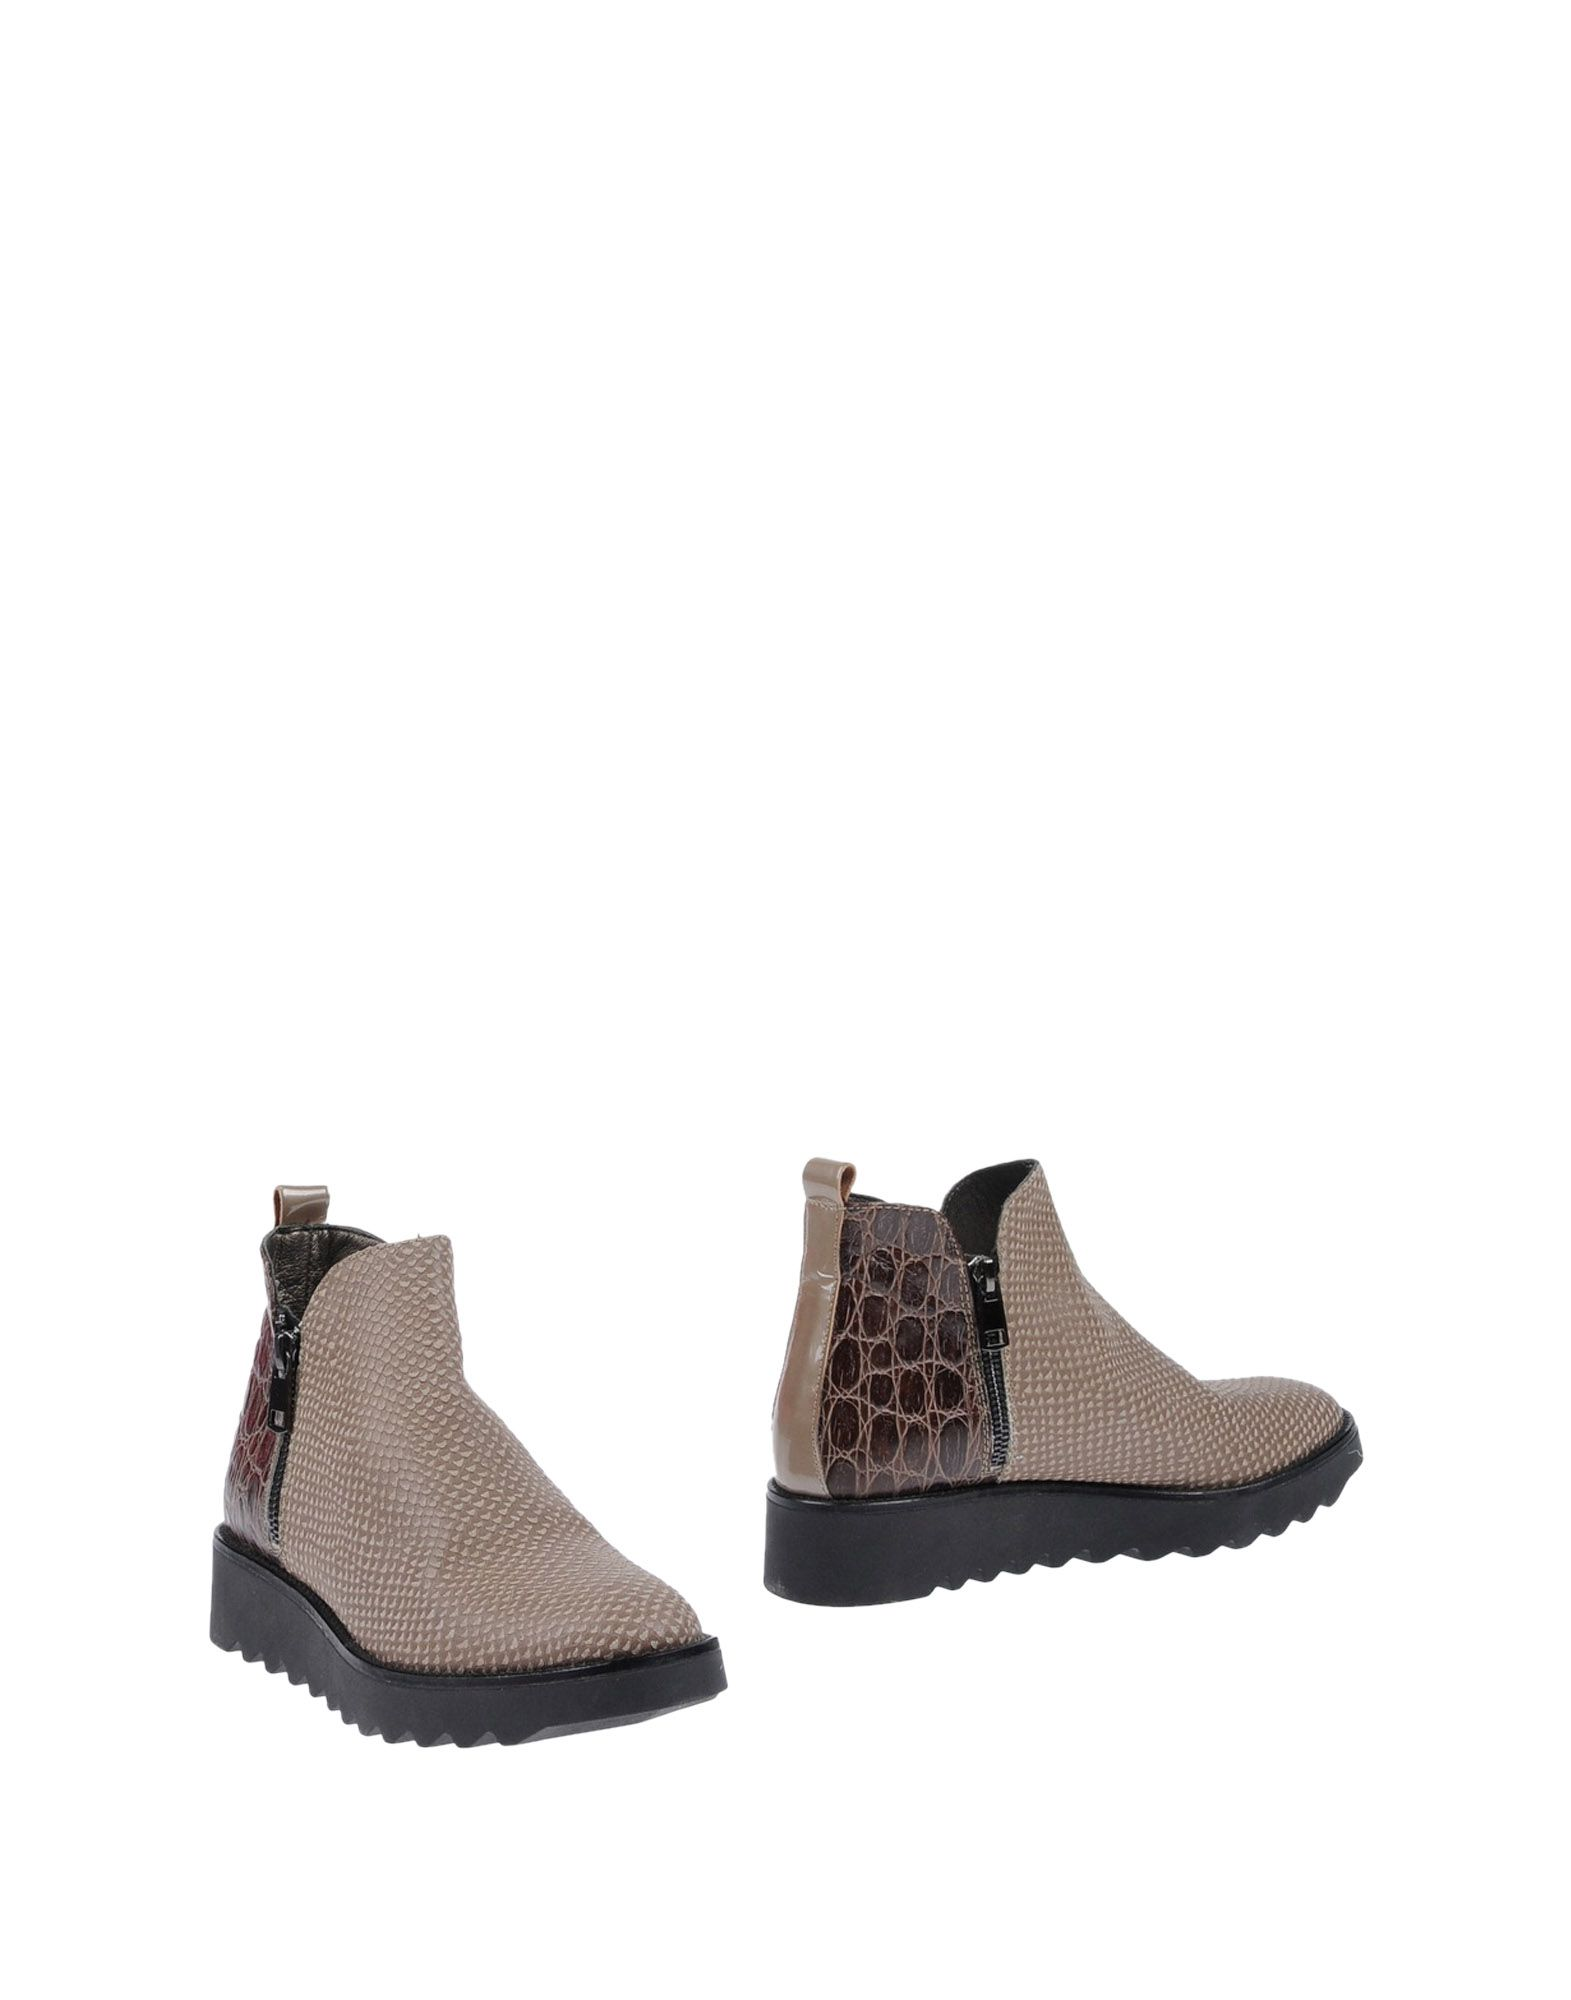 Bottine Ebarrito Femme - Bottines Ebarrito sur